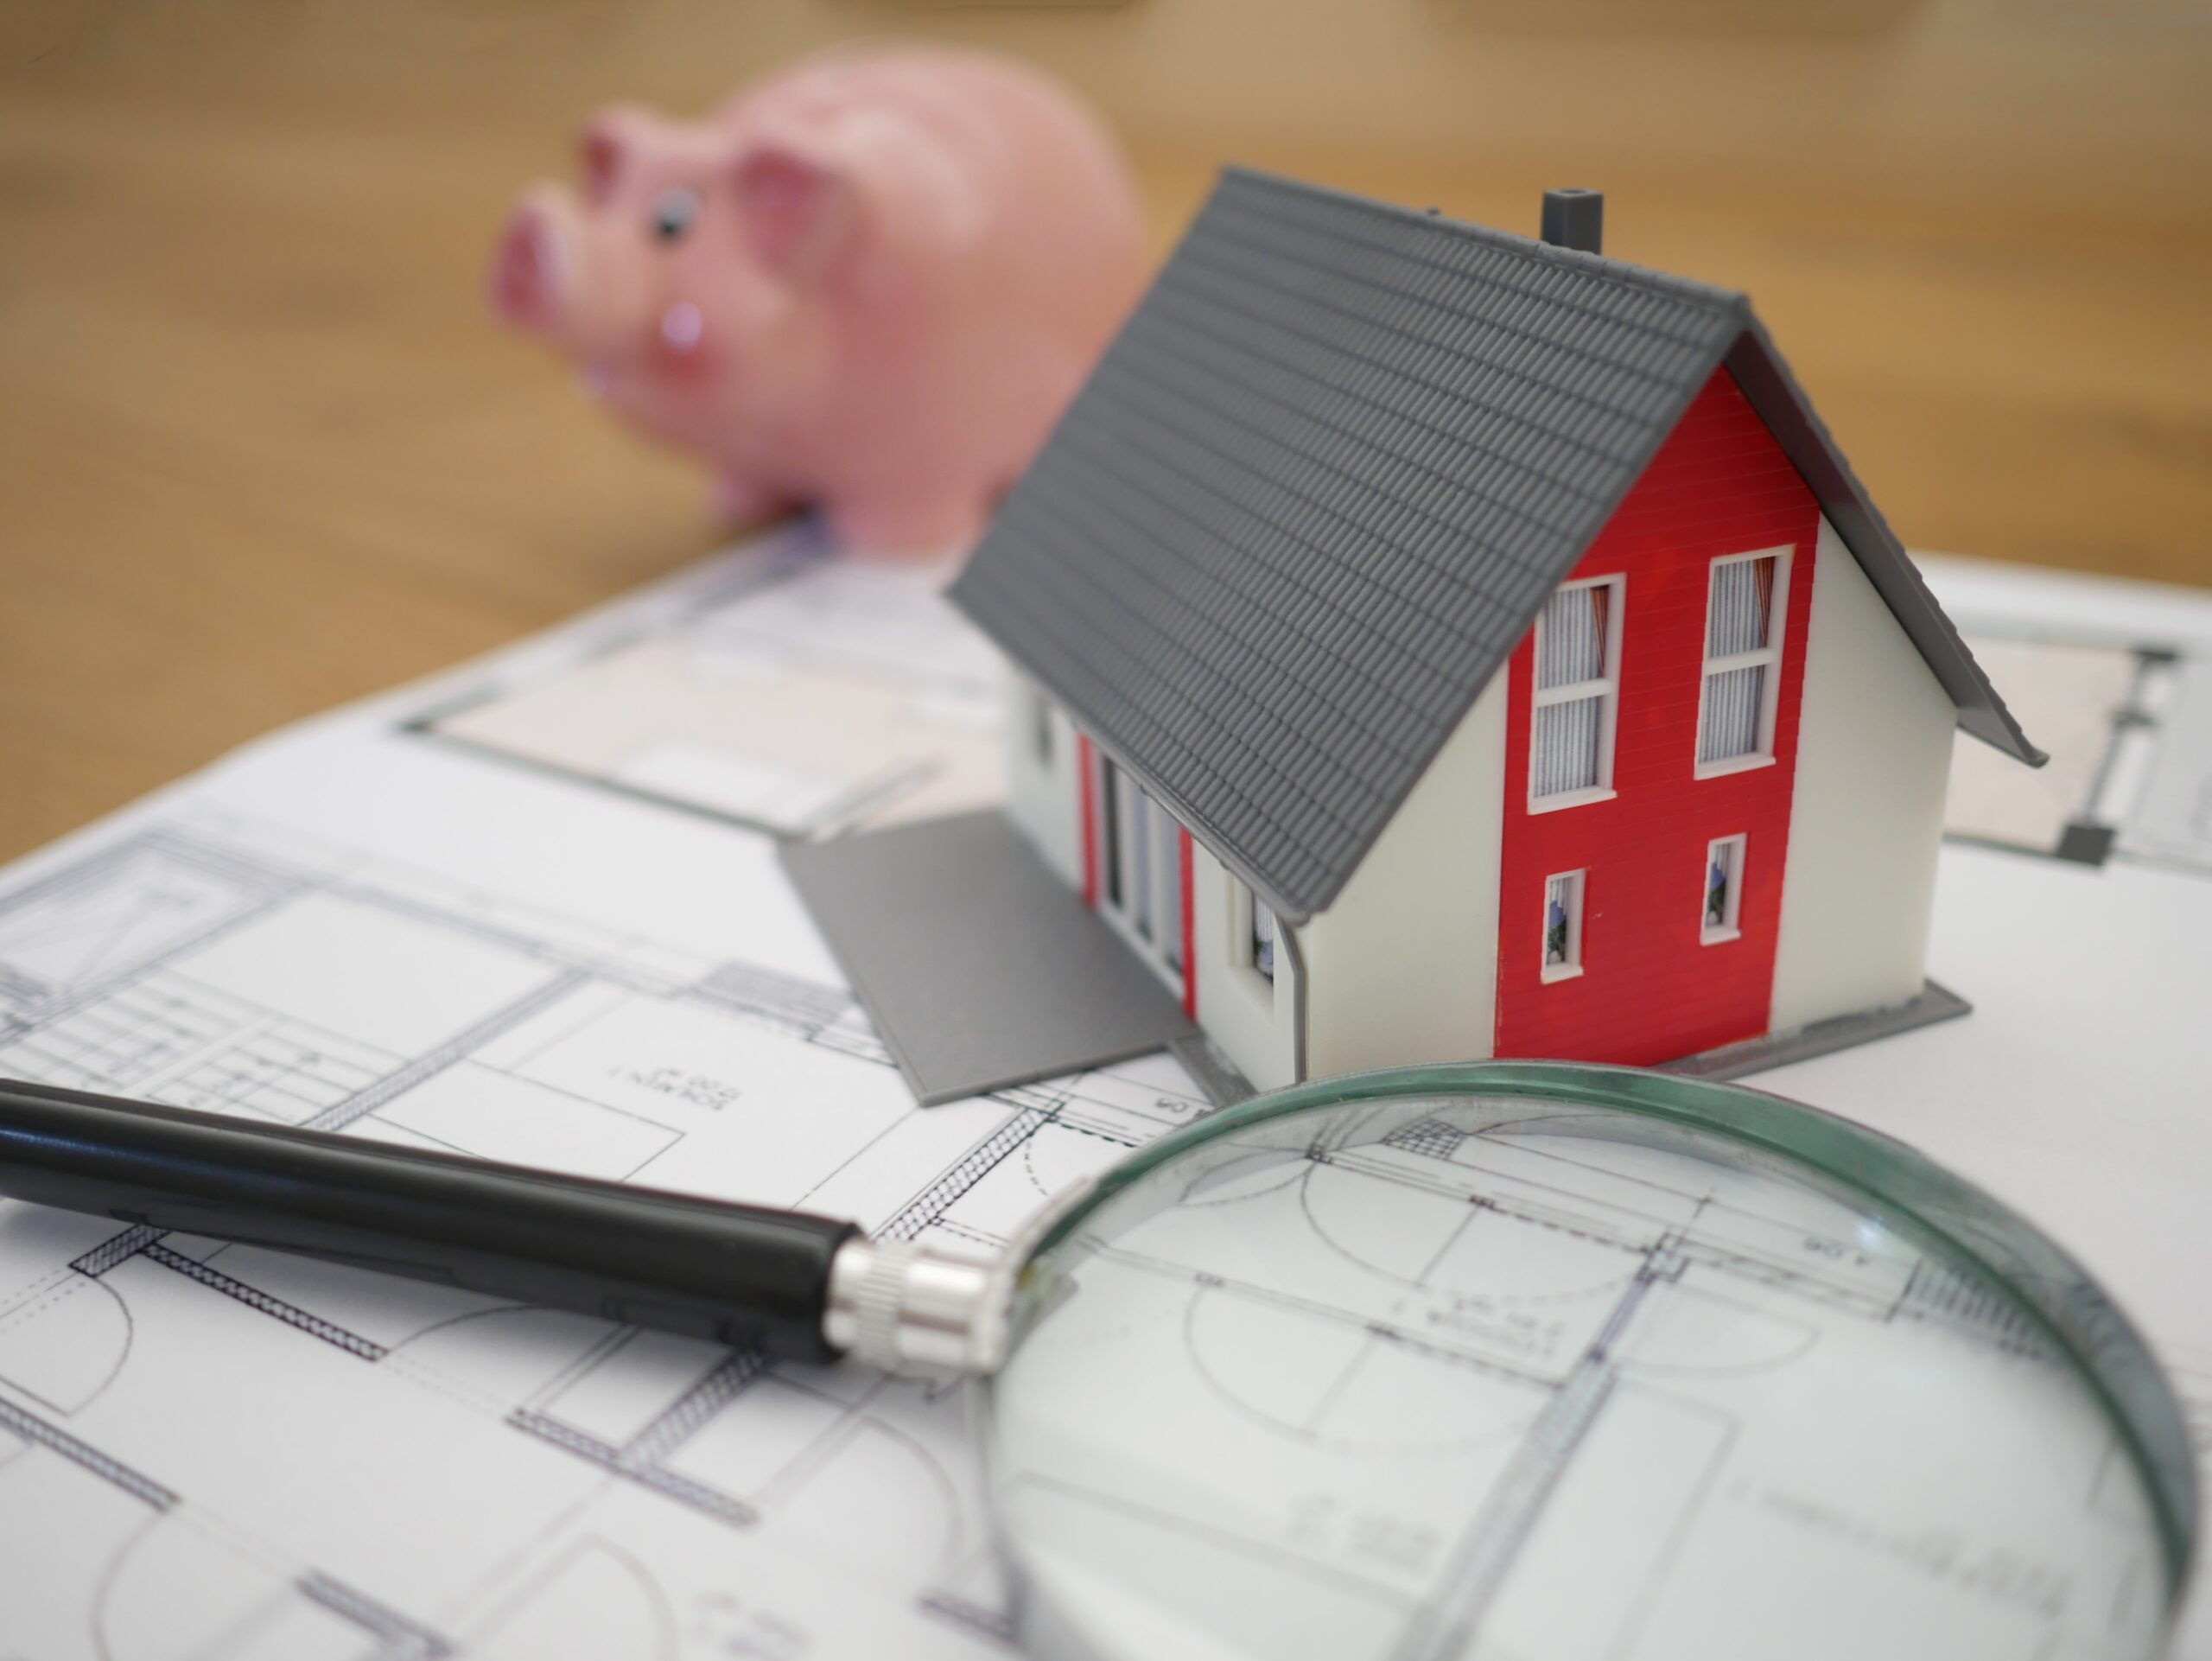 The Hidden Costs of Homeownership First Time Home Buyers Often Miss